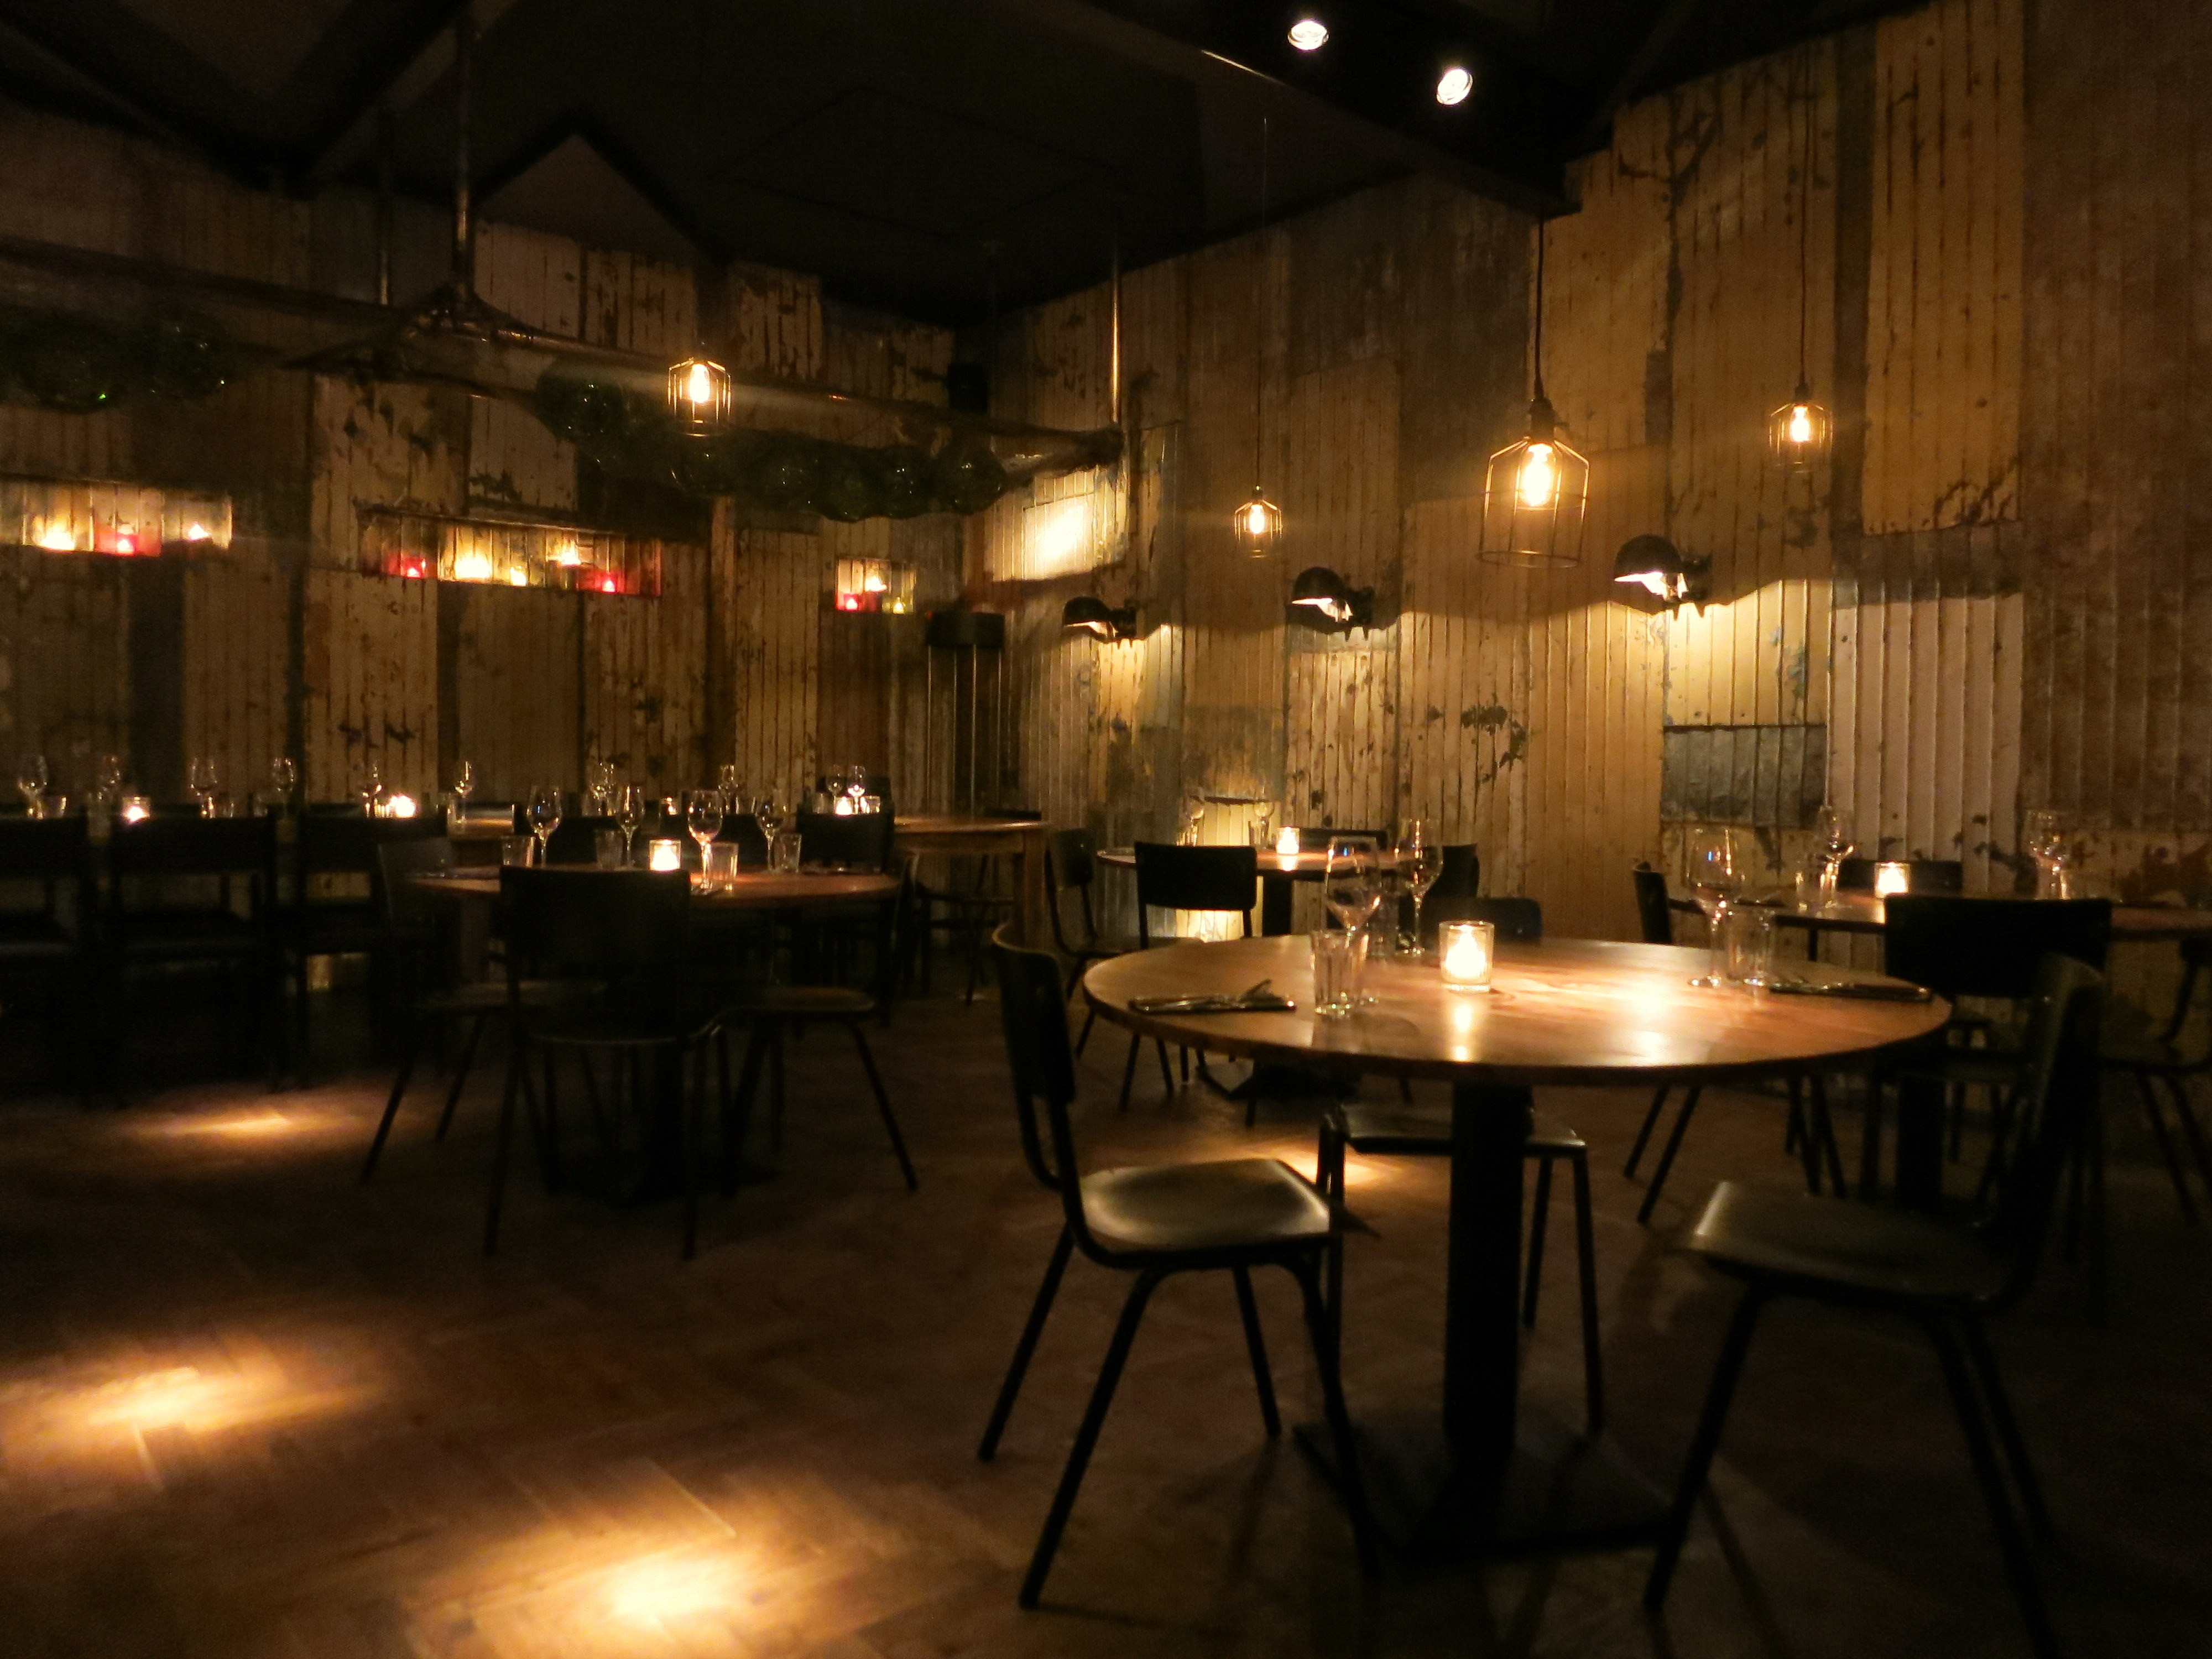 lighting for restaurant. Spot Lighting, Lots Of Green Plants, And Good Use Wood, Tiles Metal Bring The Restaurant To Life. Lighting For